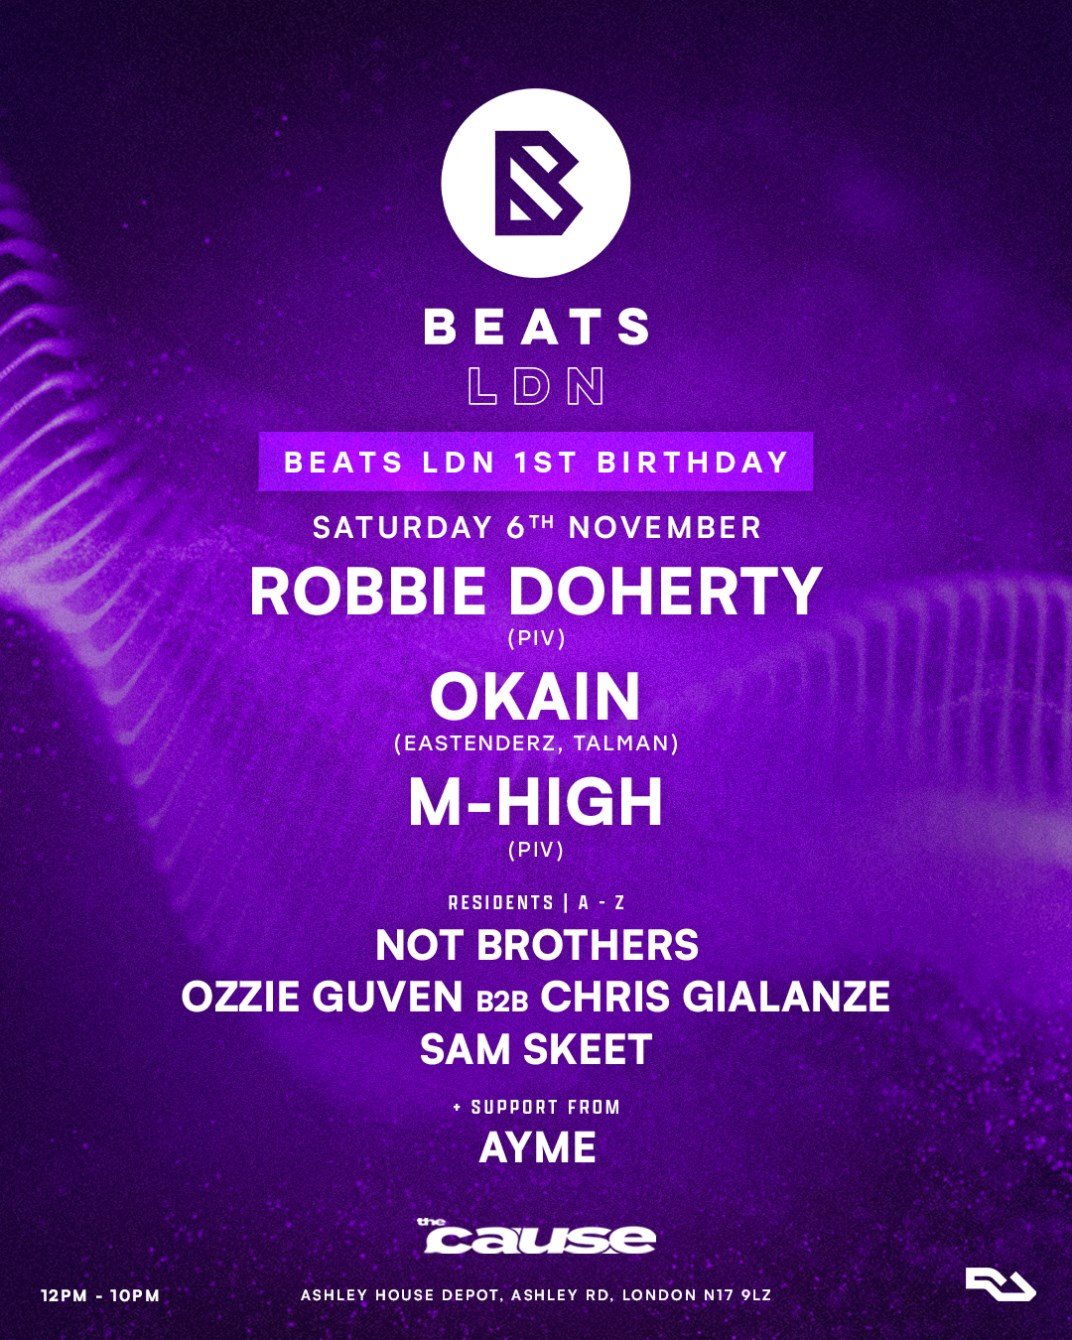 Beats LDN: 1st Birthday [DAYTIME PARTY] with Robbie Doherty, Okain, M-High - Flyer back